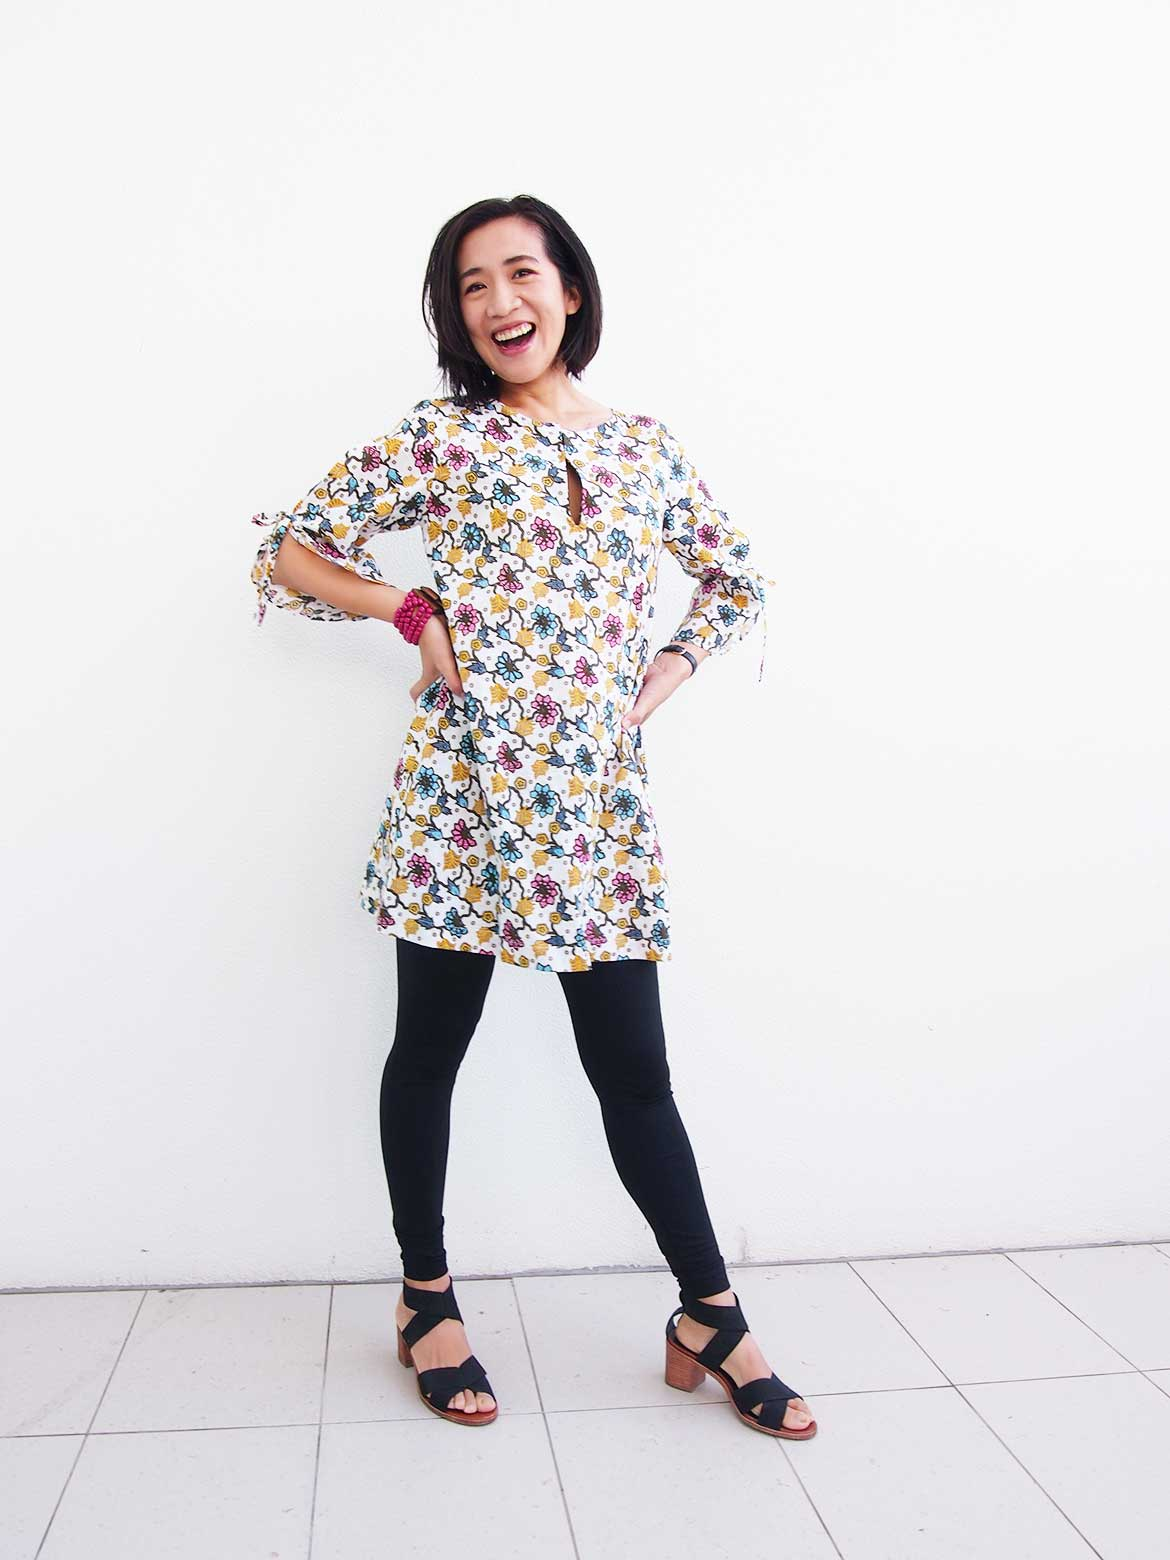 DIY Tunic Dress | This is from the popular Japanese sewing pattern book, Stylish Dress Book 1. I've made the front slit a little longer than the original design so I can breastfeed!